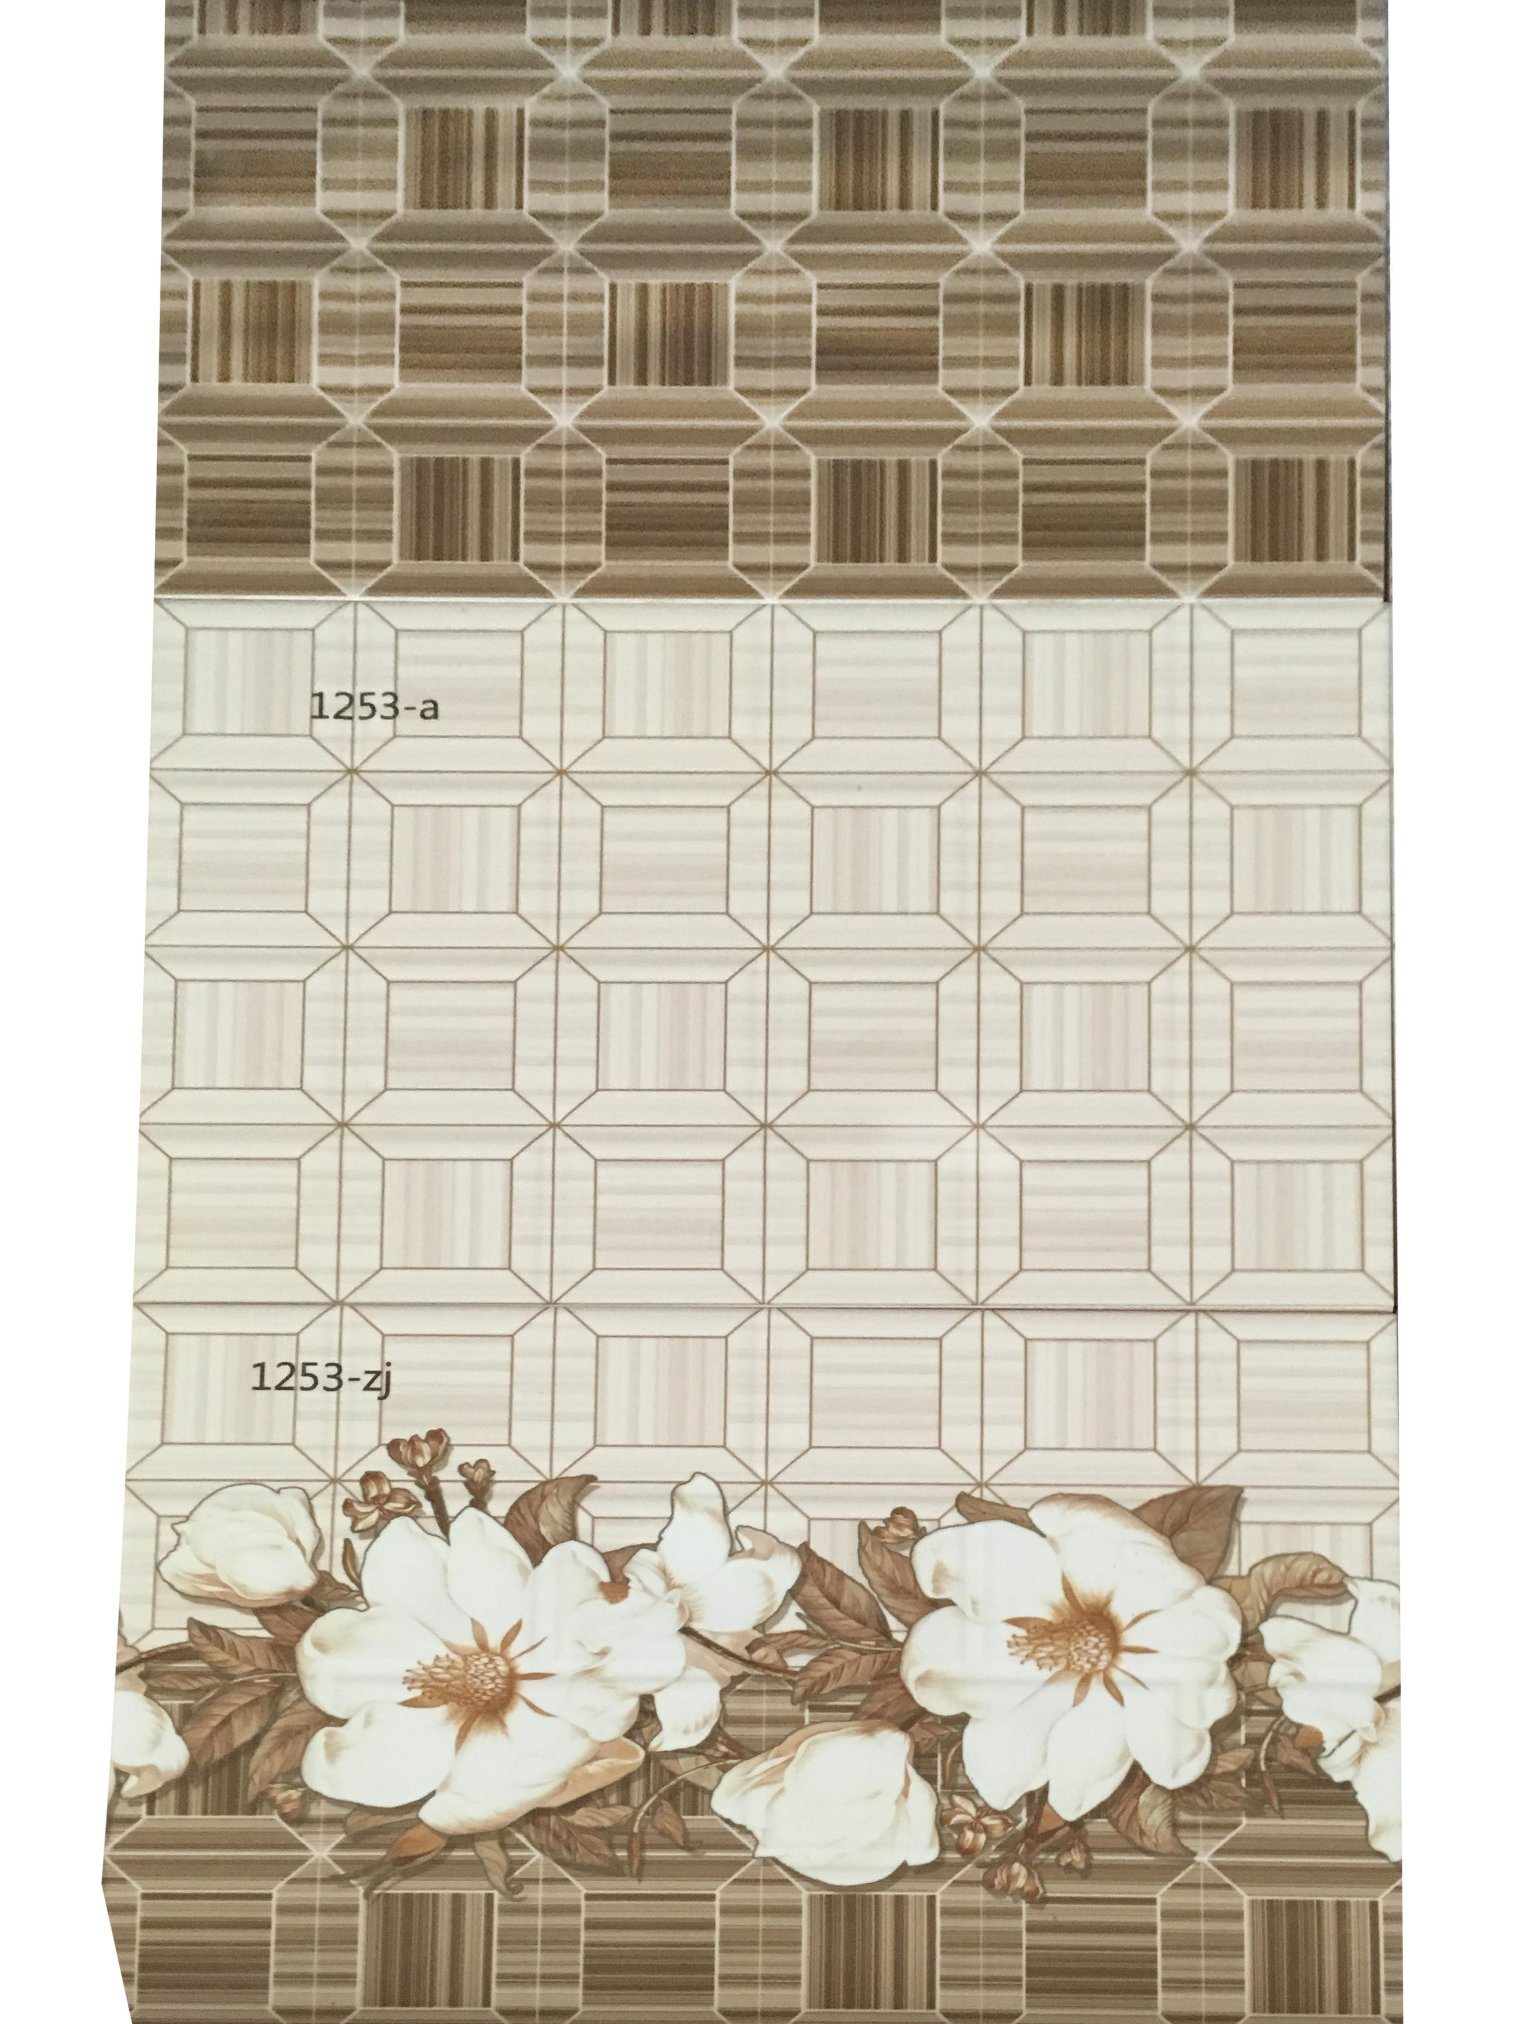 China 250400mm 3d inkjet ceramic tiles importers in dubai china china 250400mm 3d inkjet ceramic tiles importers in dubai china ceramic floor tile floor tile dailygadgetfo Choice Image